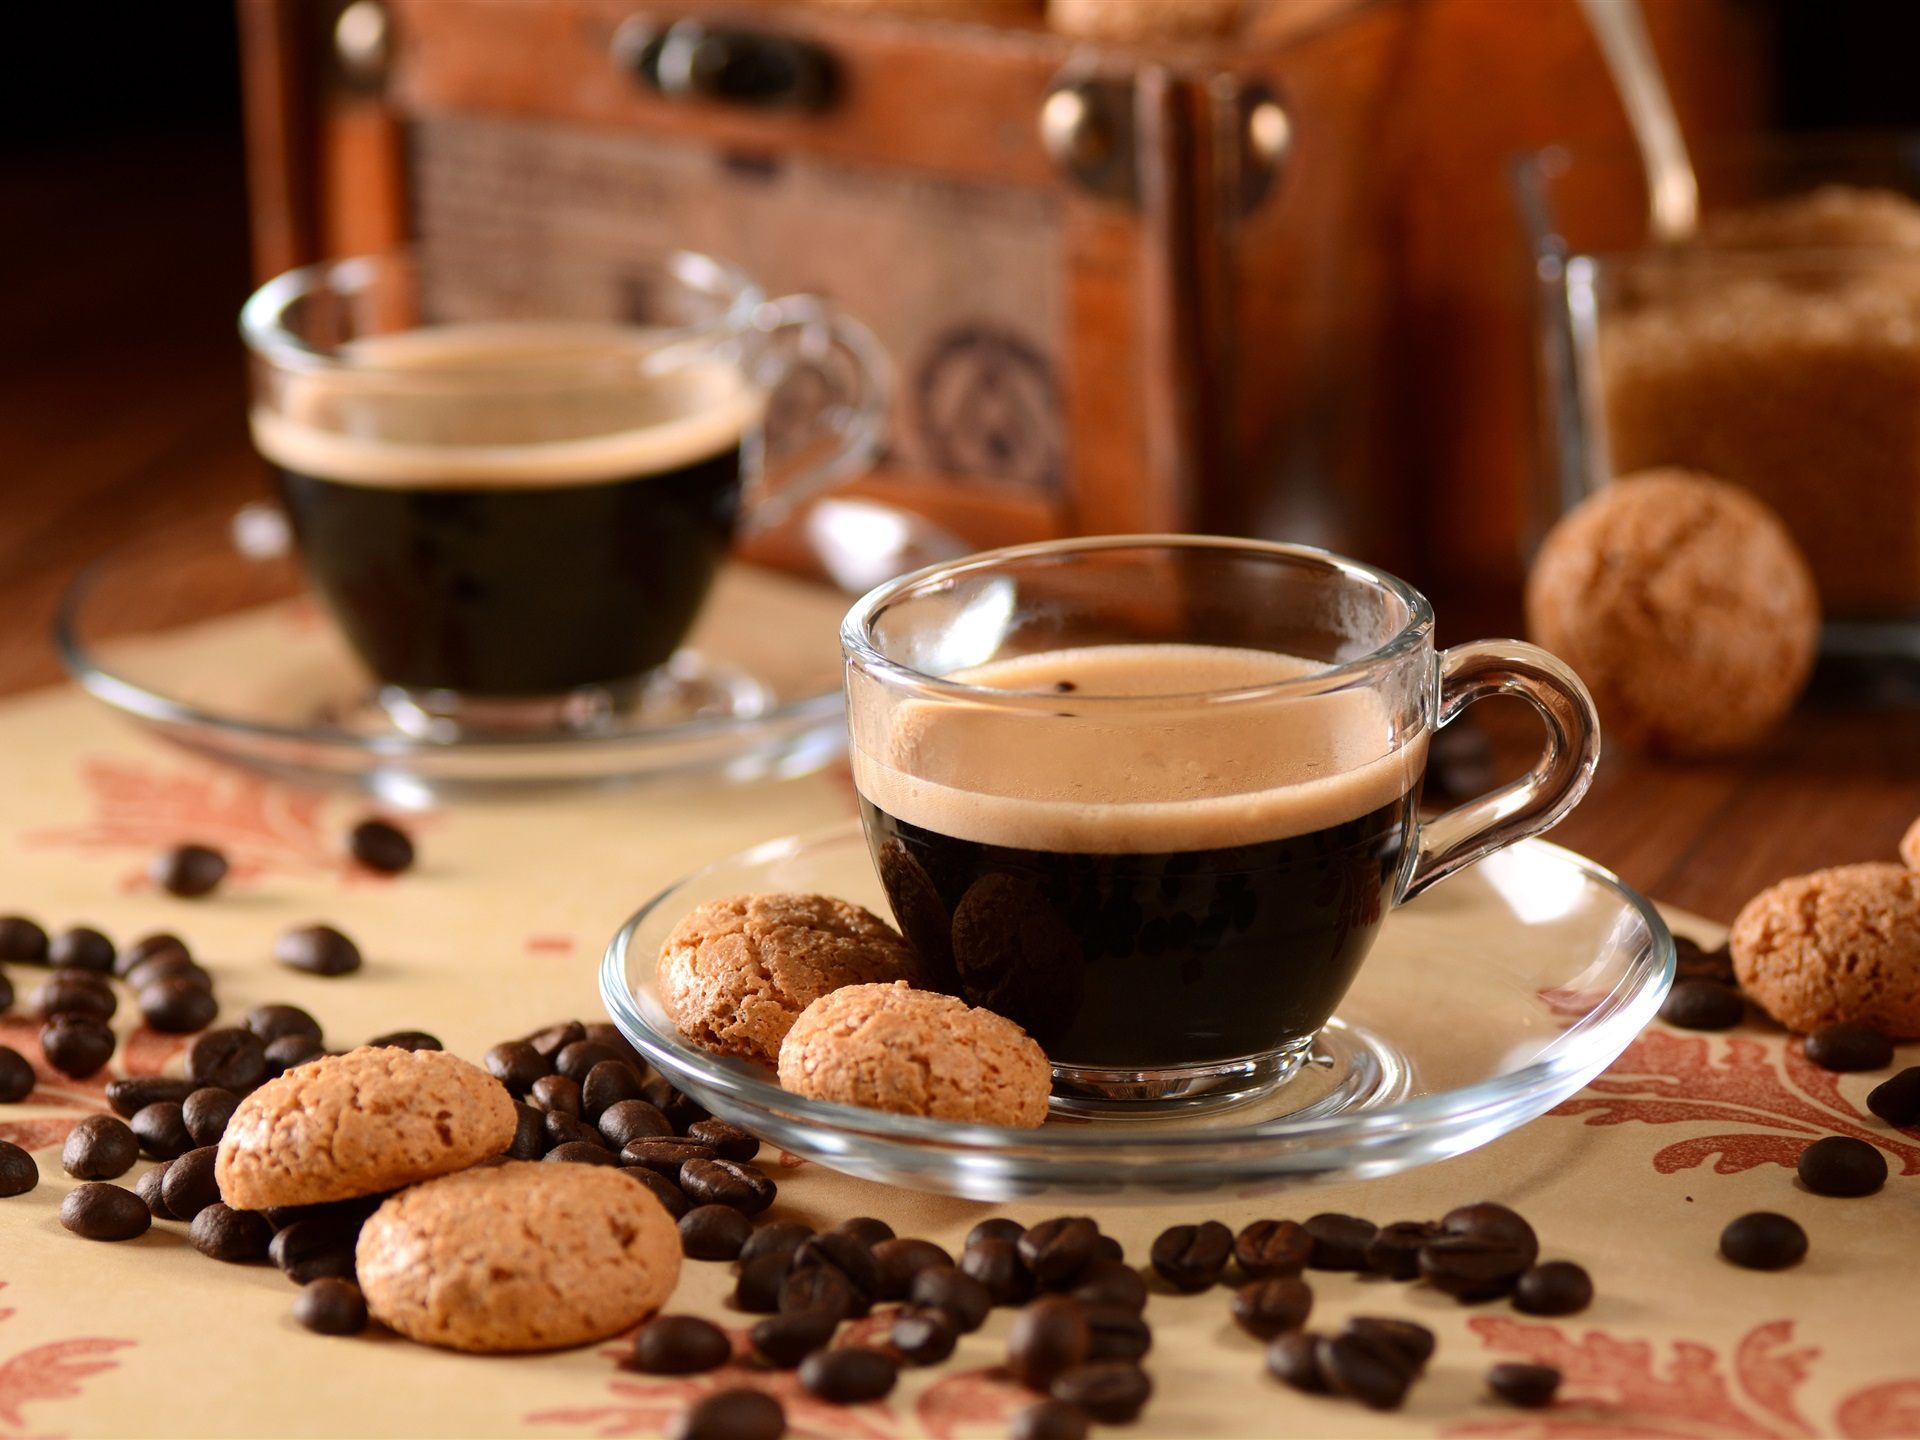 Coffee-beans-cookies-cups_1920x1440